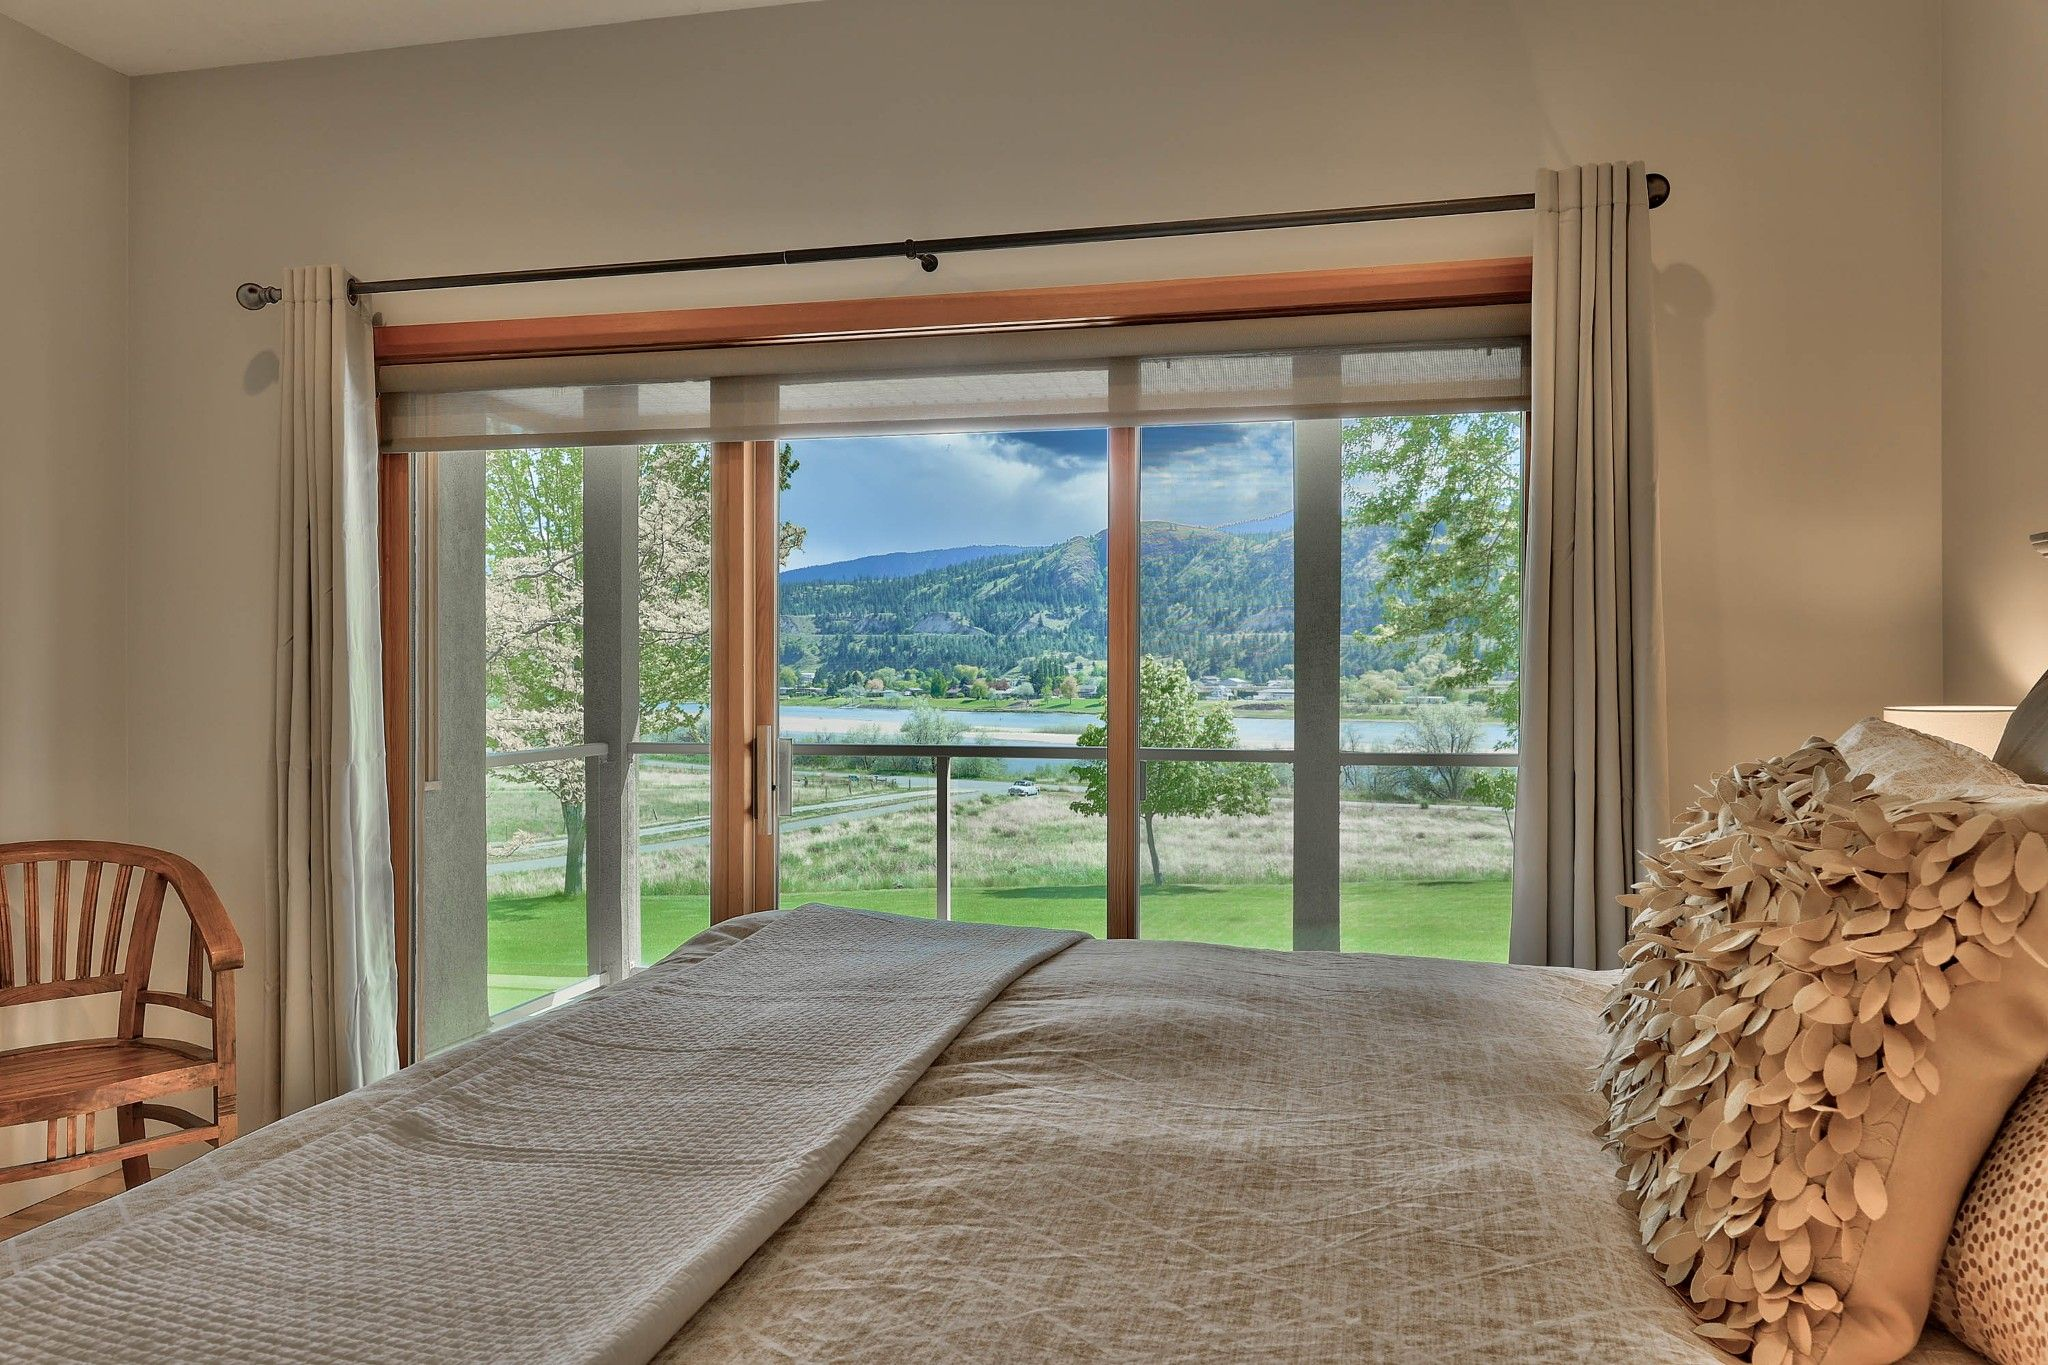 Photo 22: Photos: 3299 E Shuswap Road in Kamloops: South Thompson Valley House for sale : MLS®# 162162